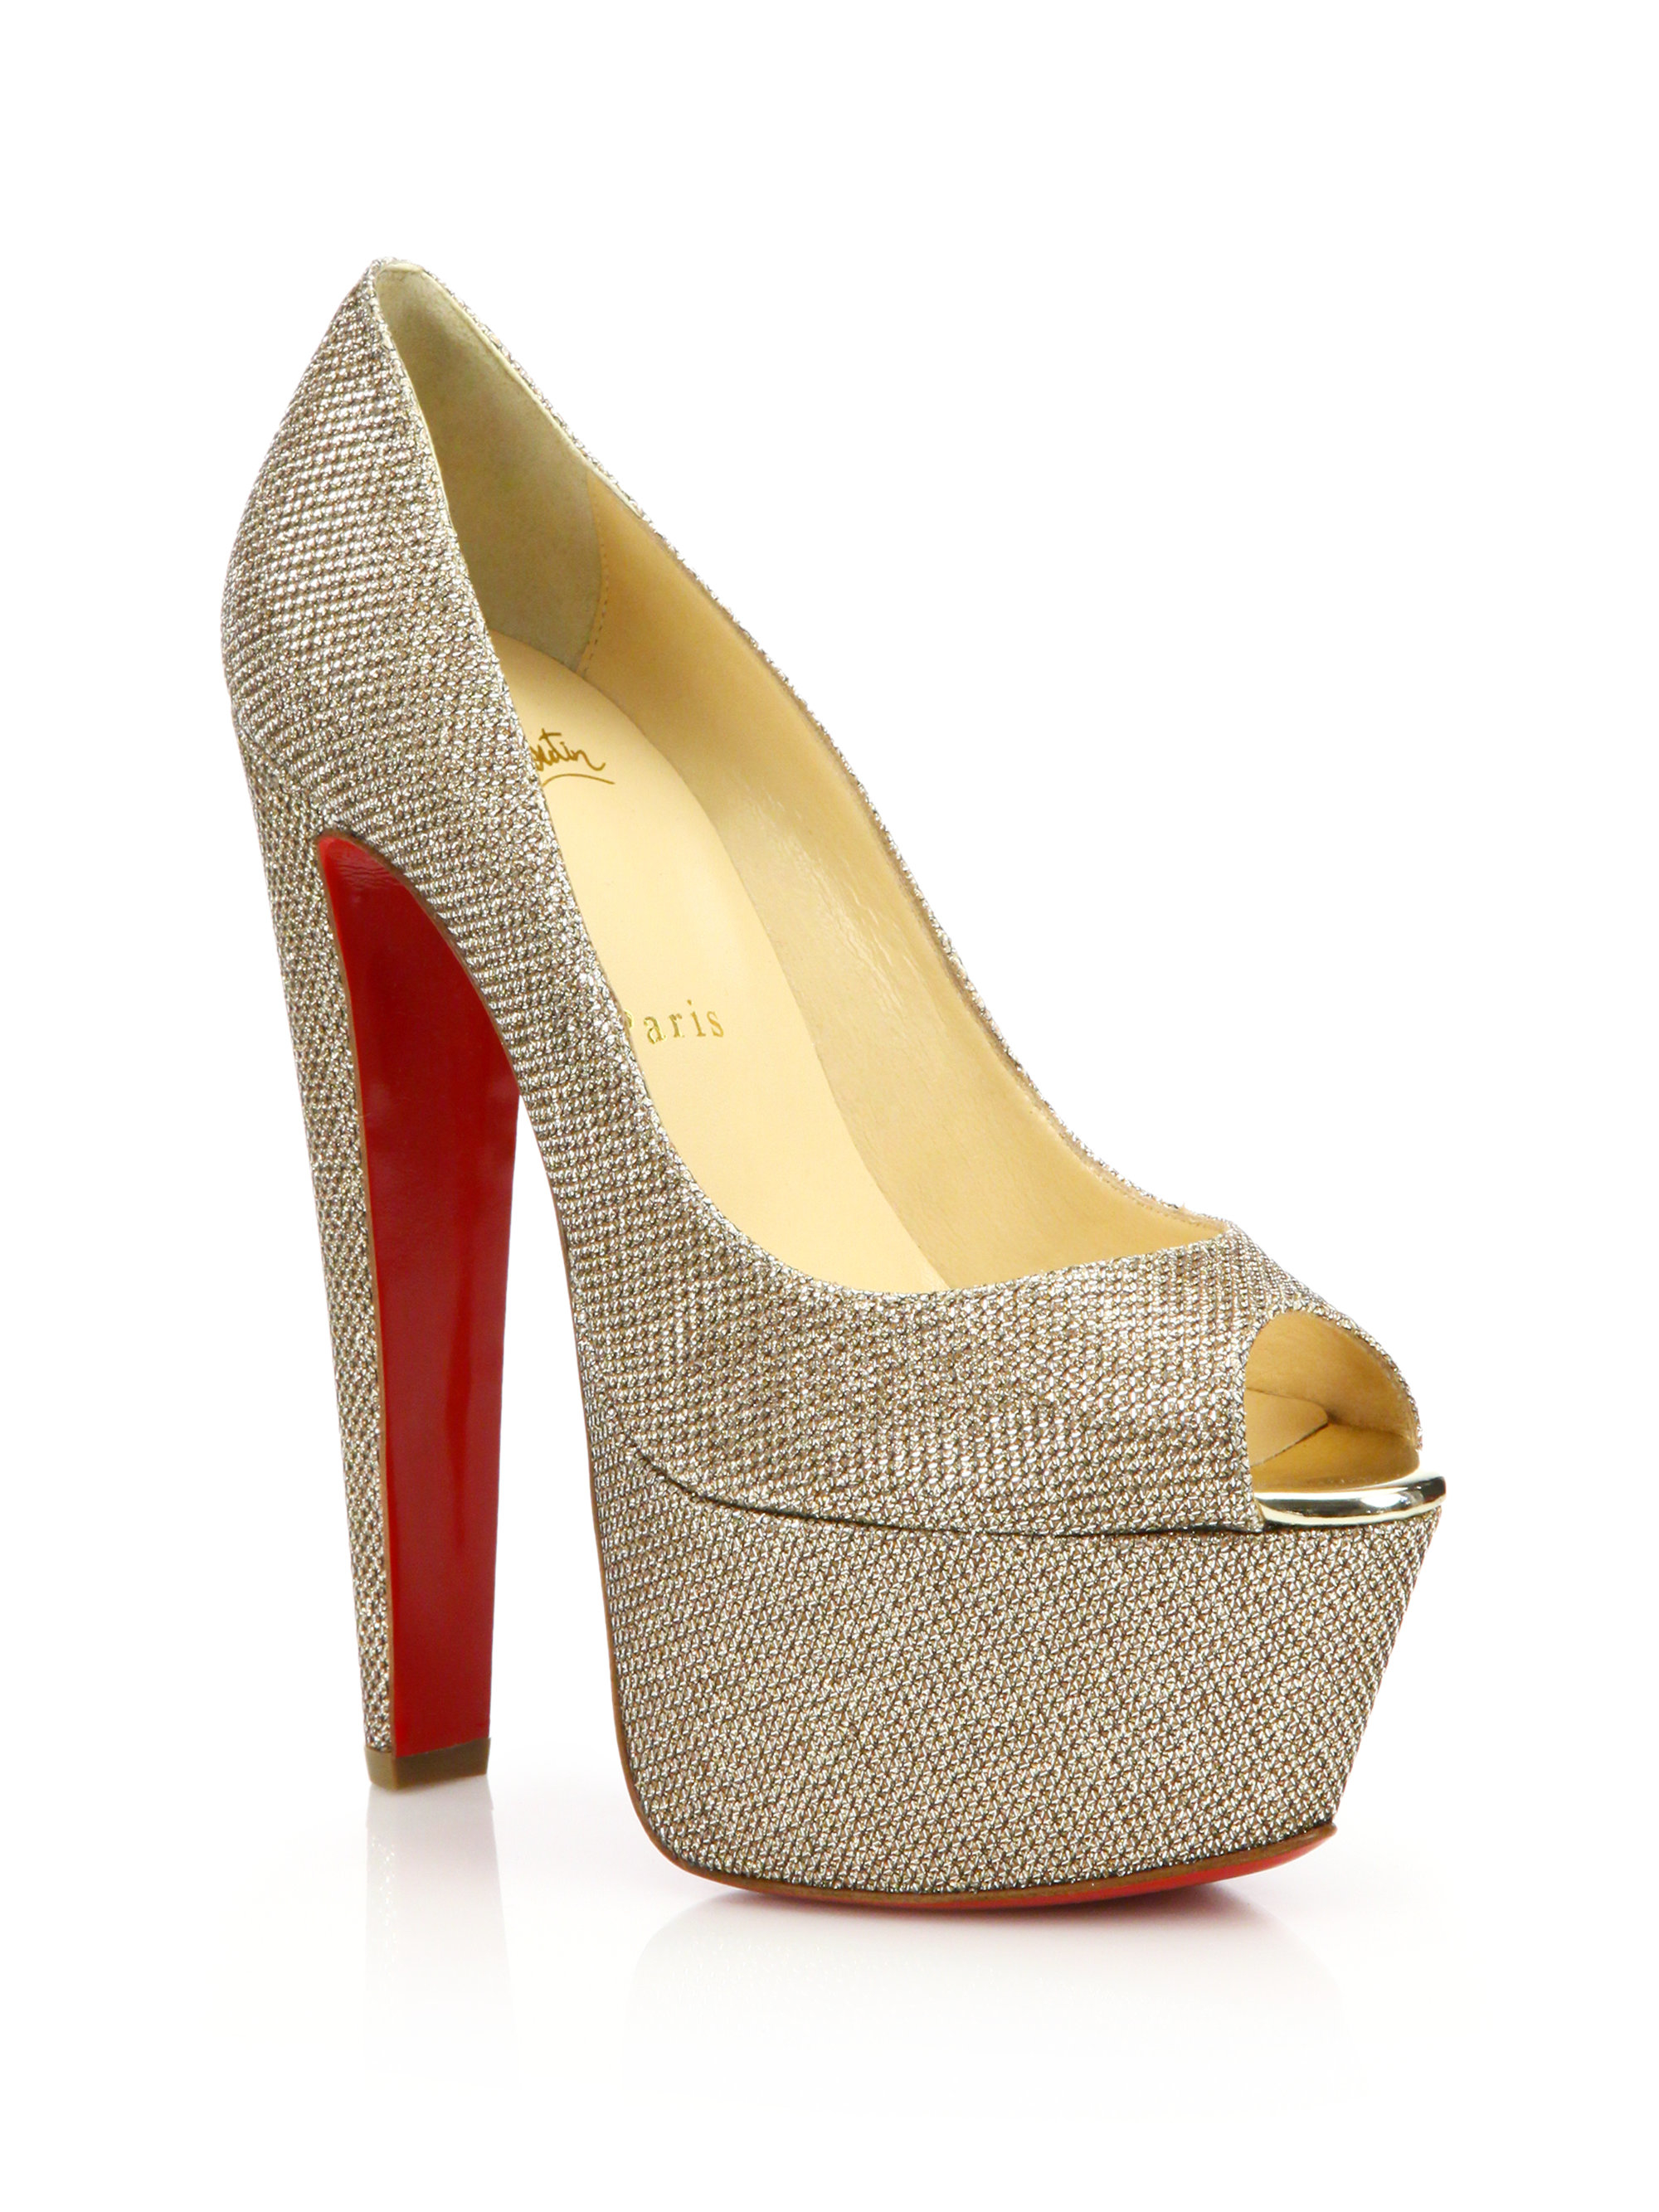 christian louboutin mens shoes replica - Christian louboutin Altavera Crystal-Embellished Leather Peep-Toe ...